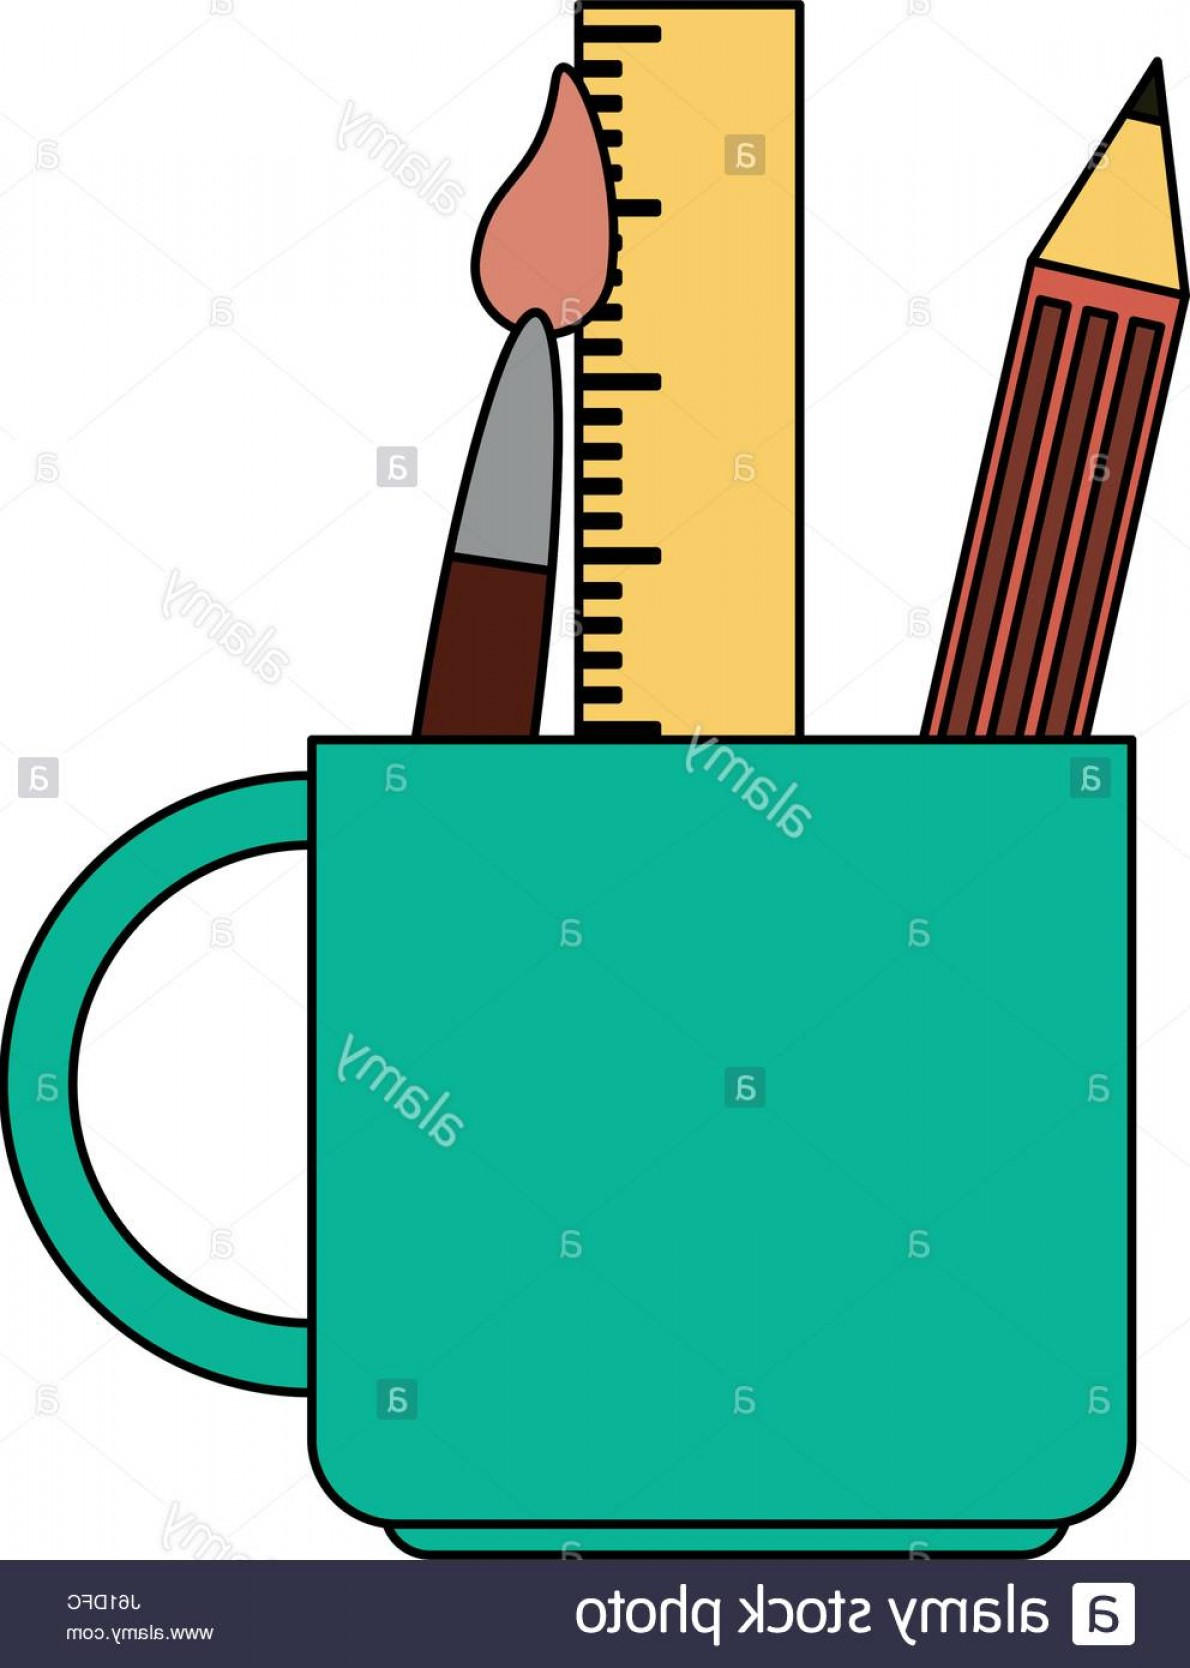 Vector Pencil Holder: Stock Photo Color Image Cartoon Pencil Holder With Brush And Ruler